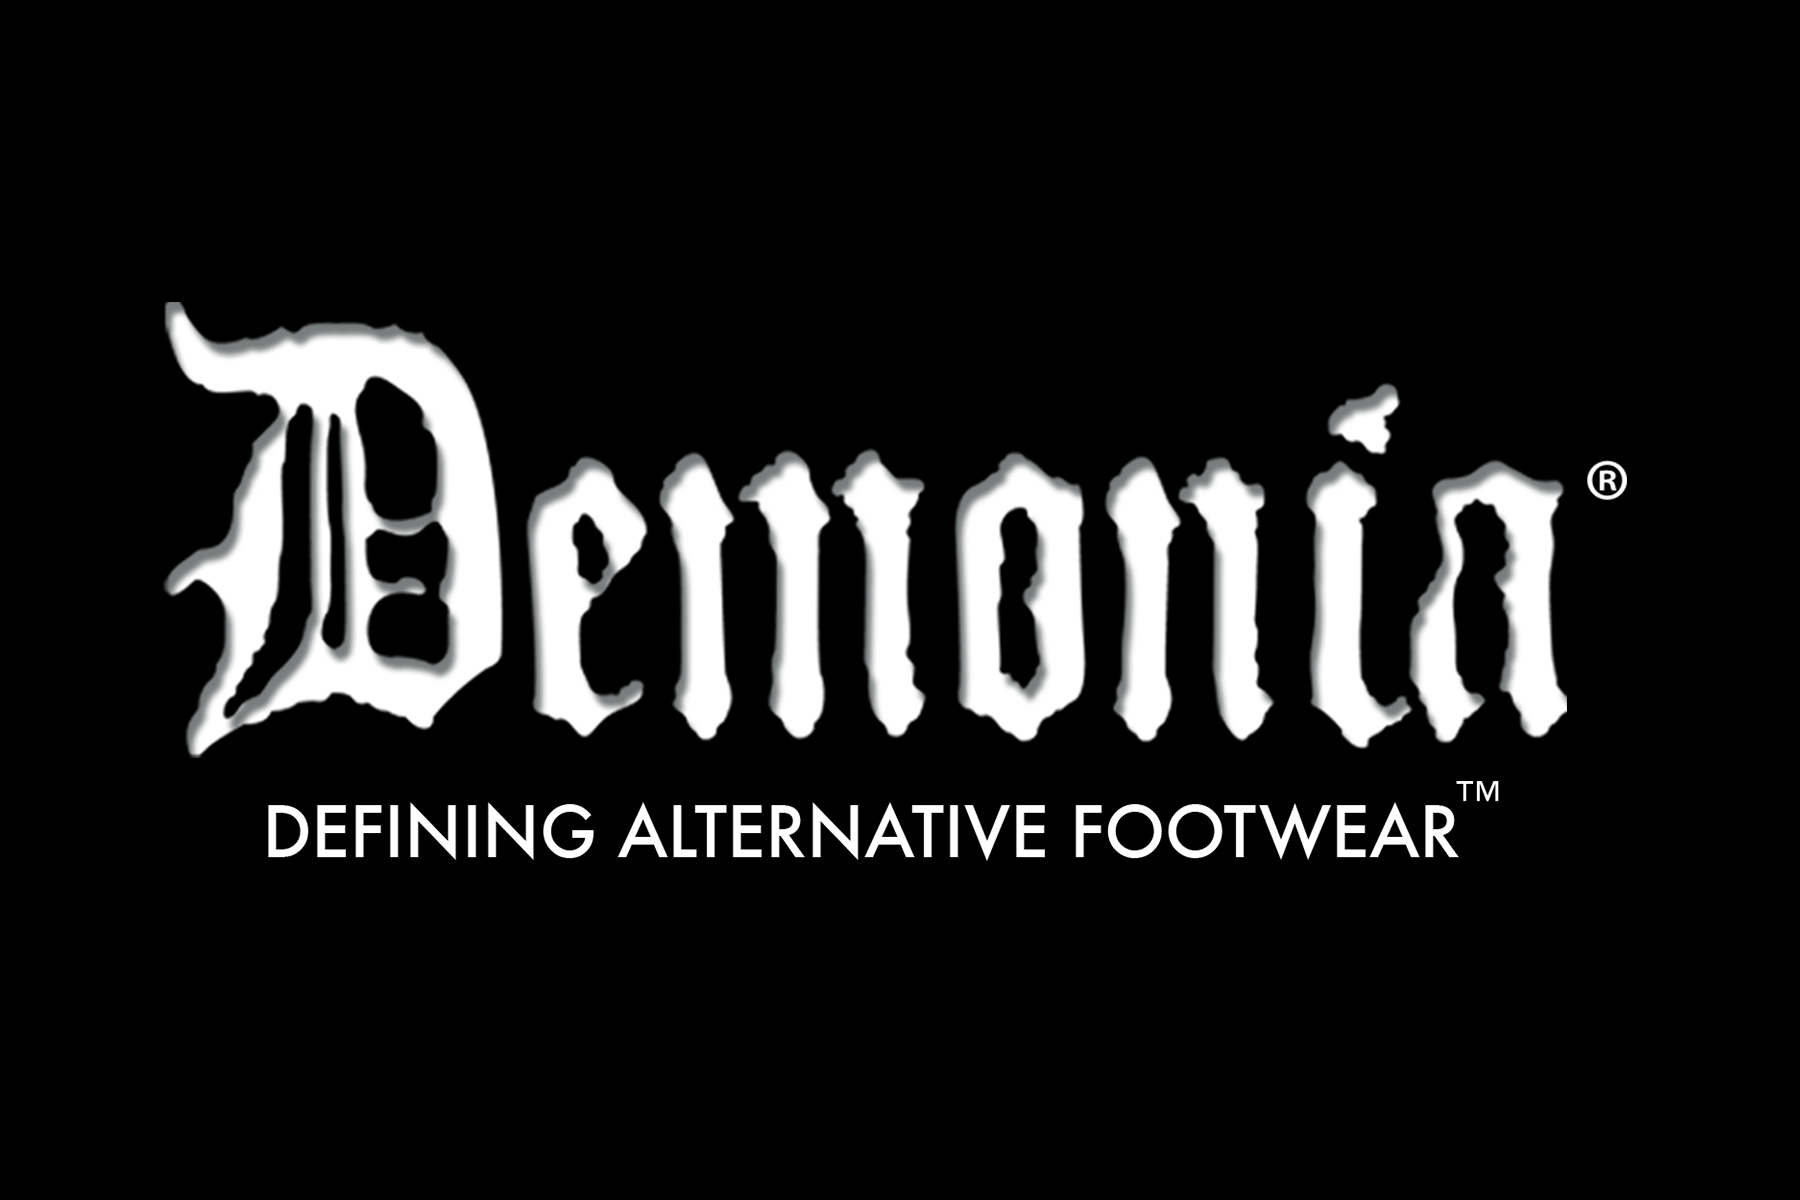 demonia scarpe punk gotic metal